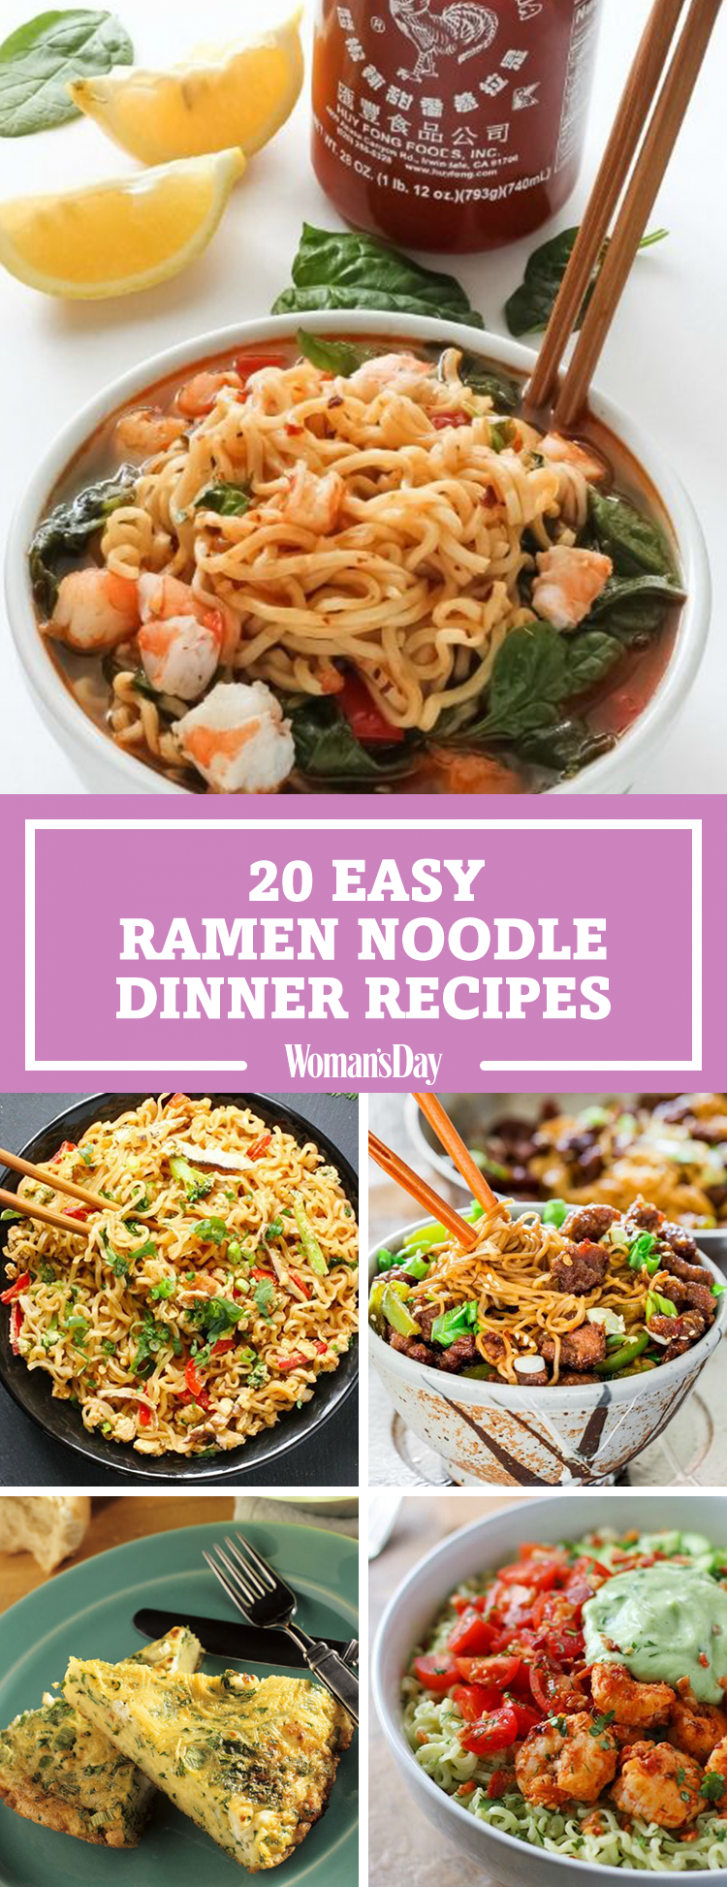 20 Easy Ramen Noodle Recipes - Best Recipes With Ramen Noodles